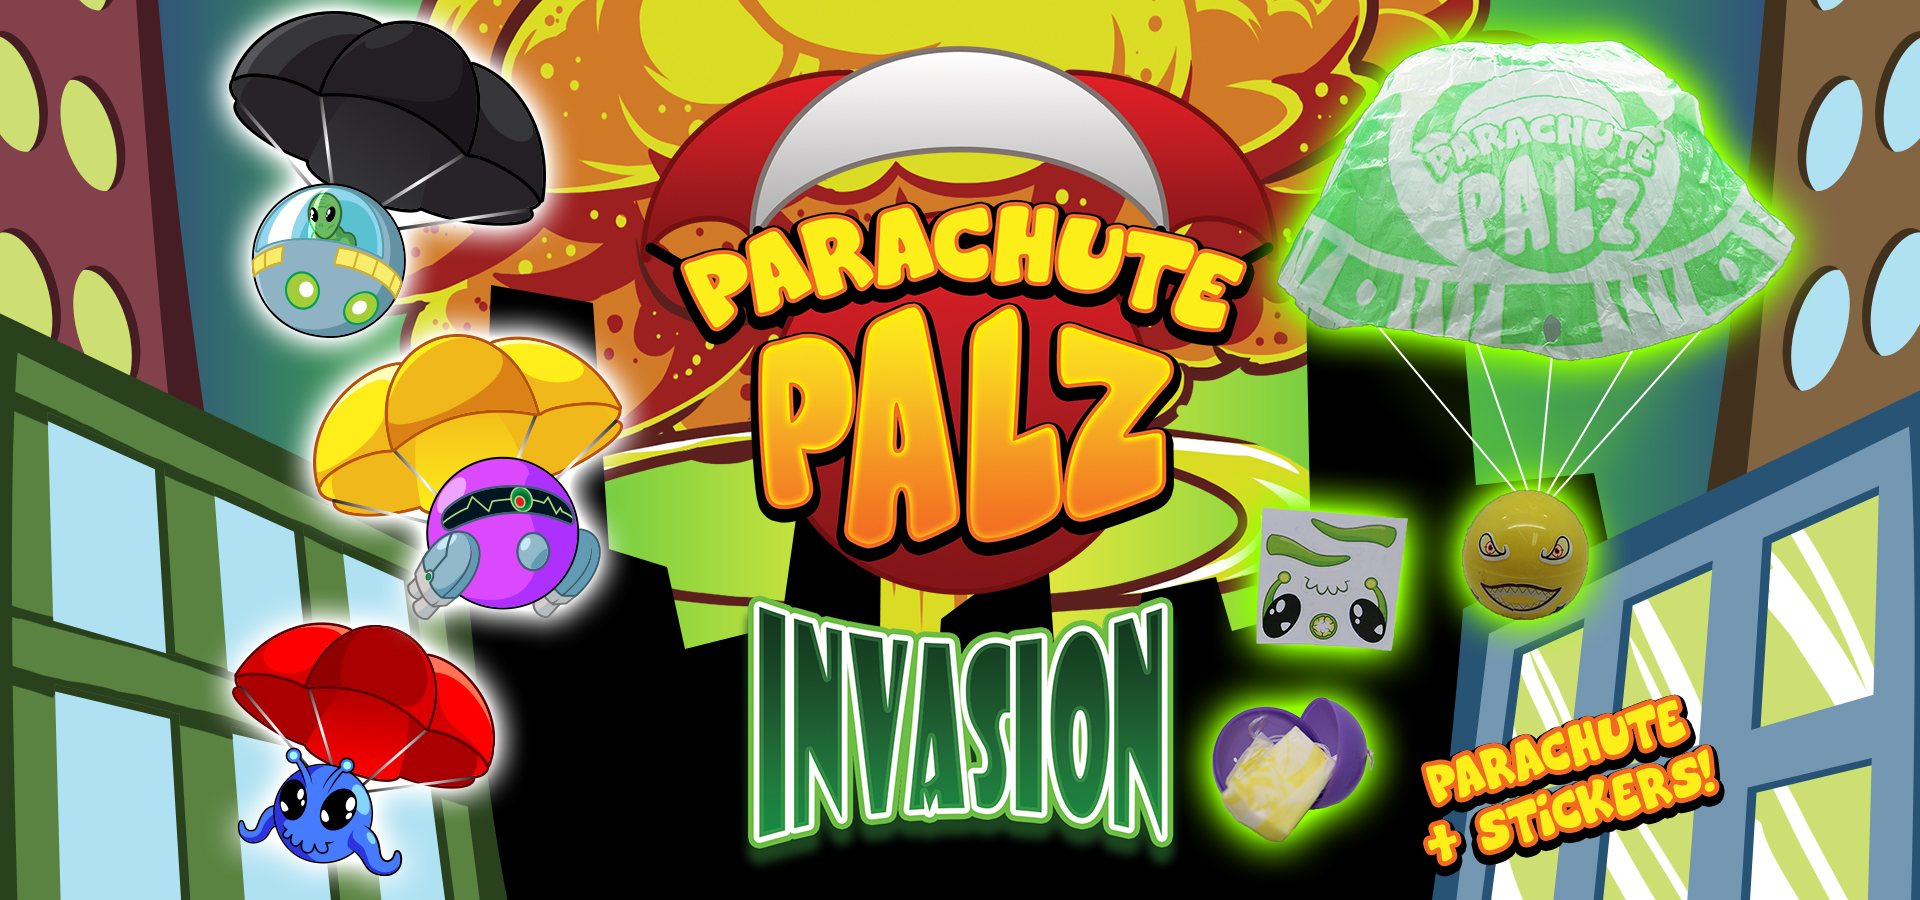 ParachutePalzFeaturedImage